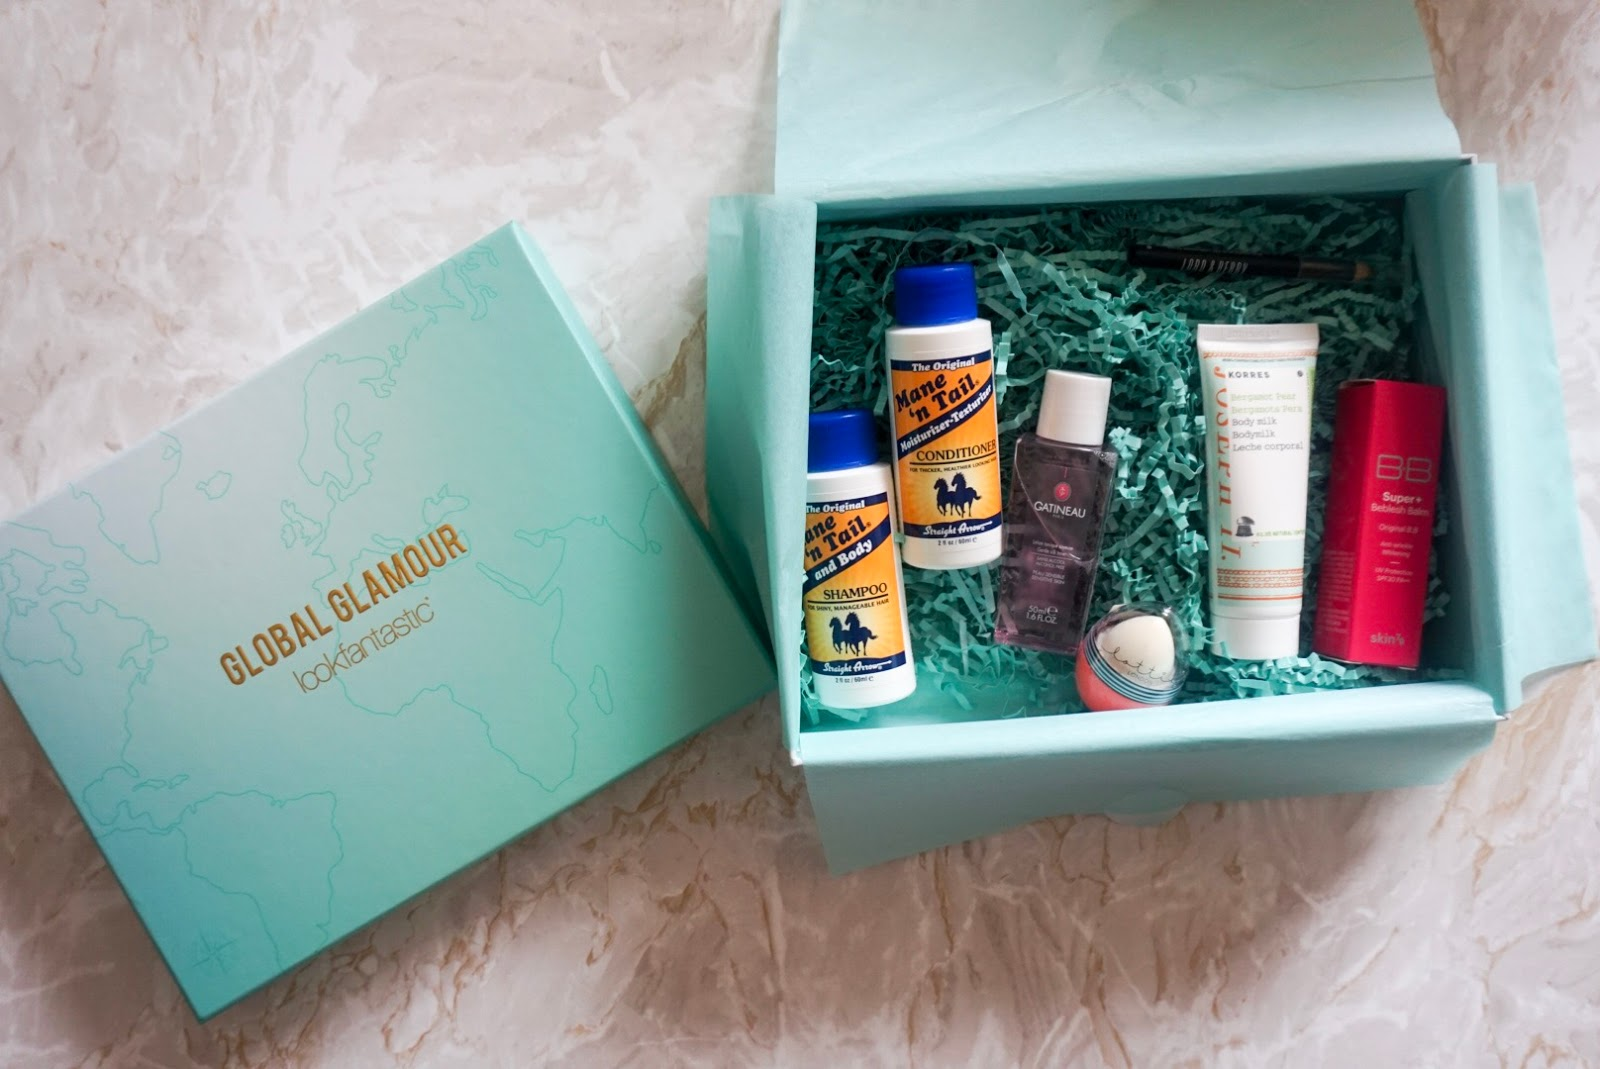 Beauty | Look Fantastic Beauty Box - August